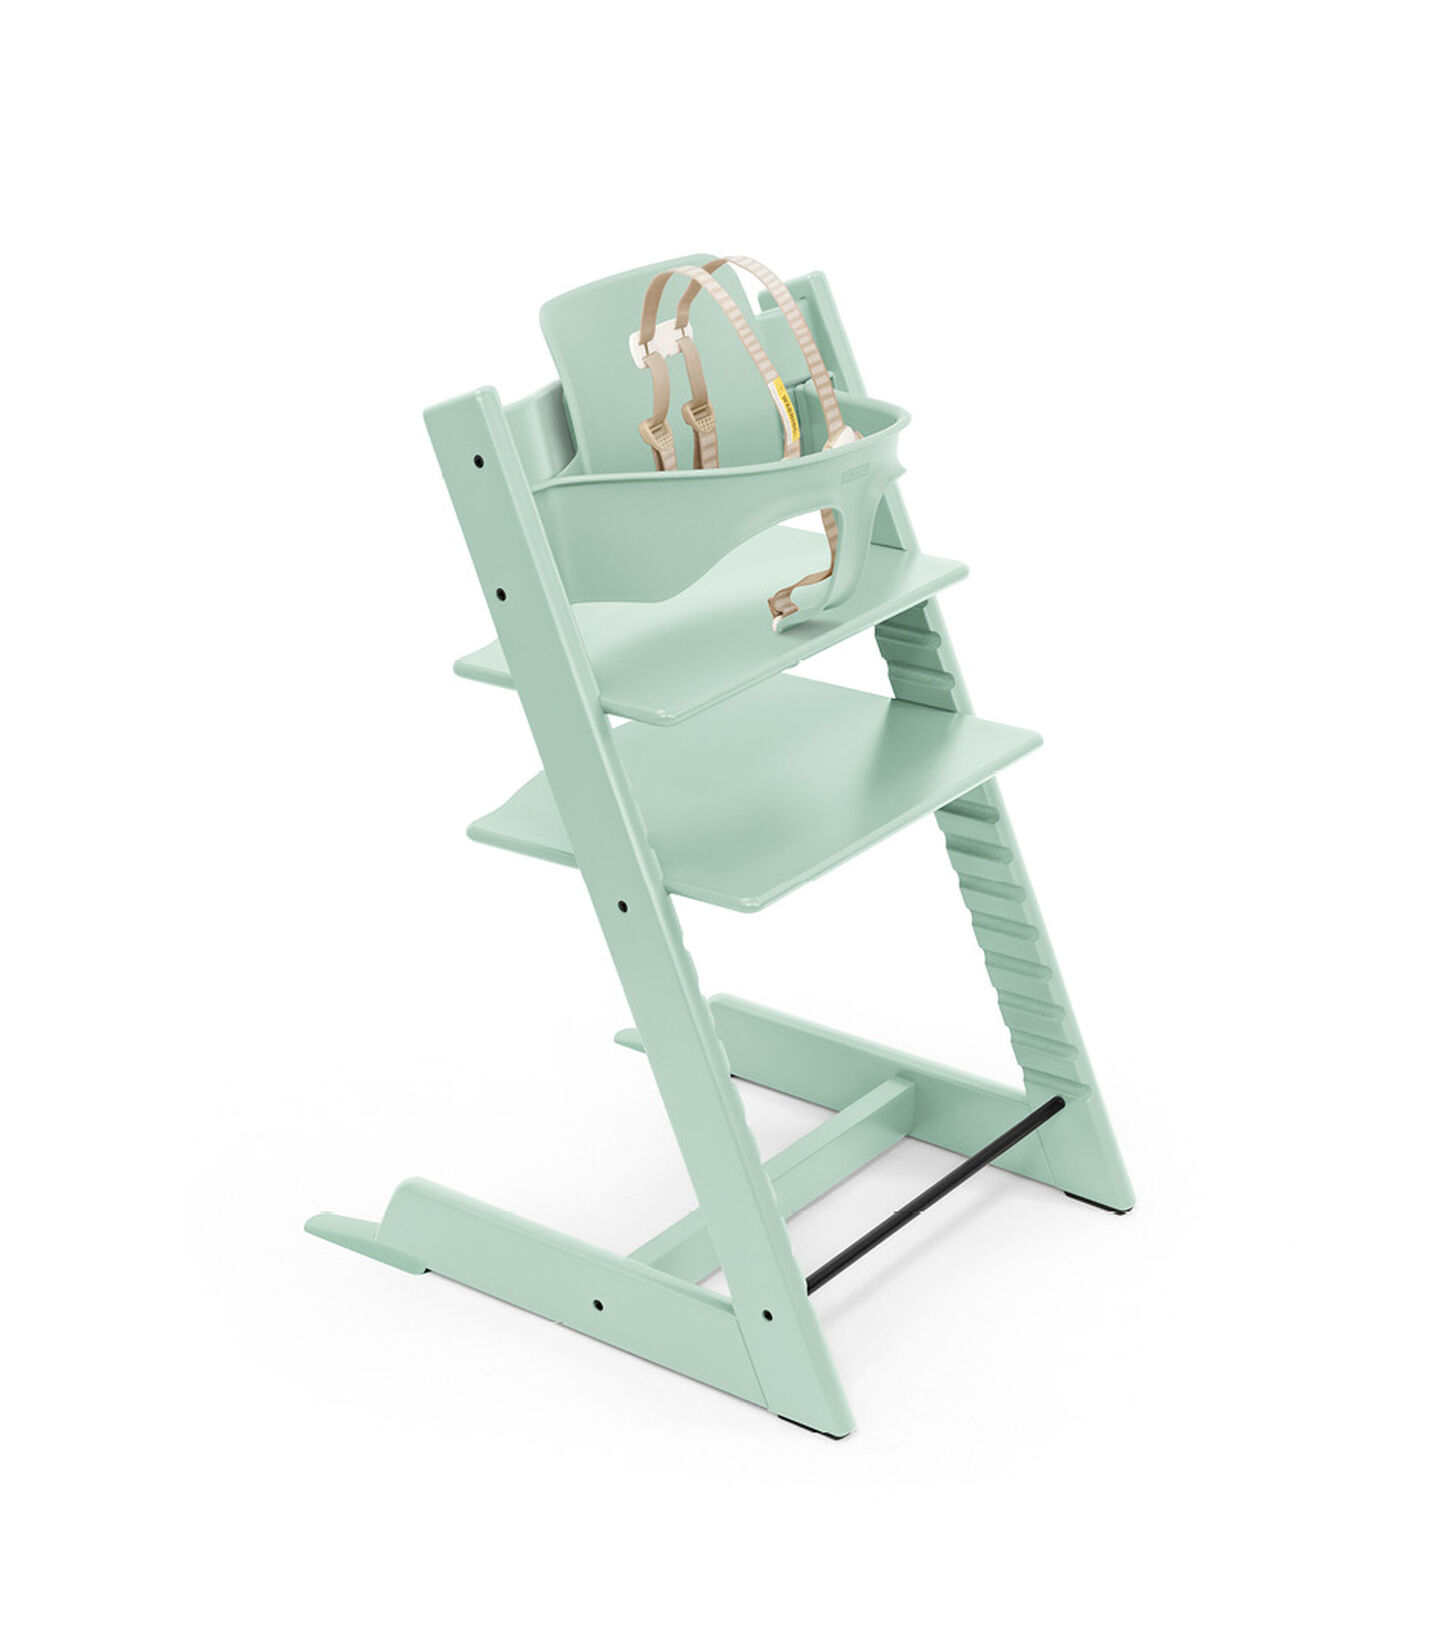 Tripp Trapp® Bundle High Chair US 20 Soft Mint, Soft Mint, mainview view 2